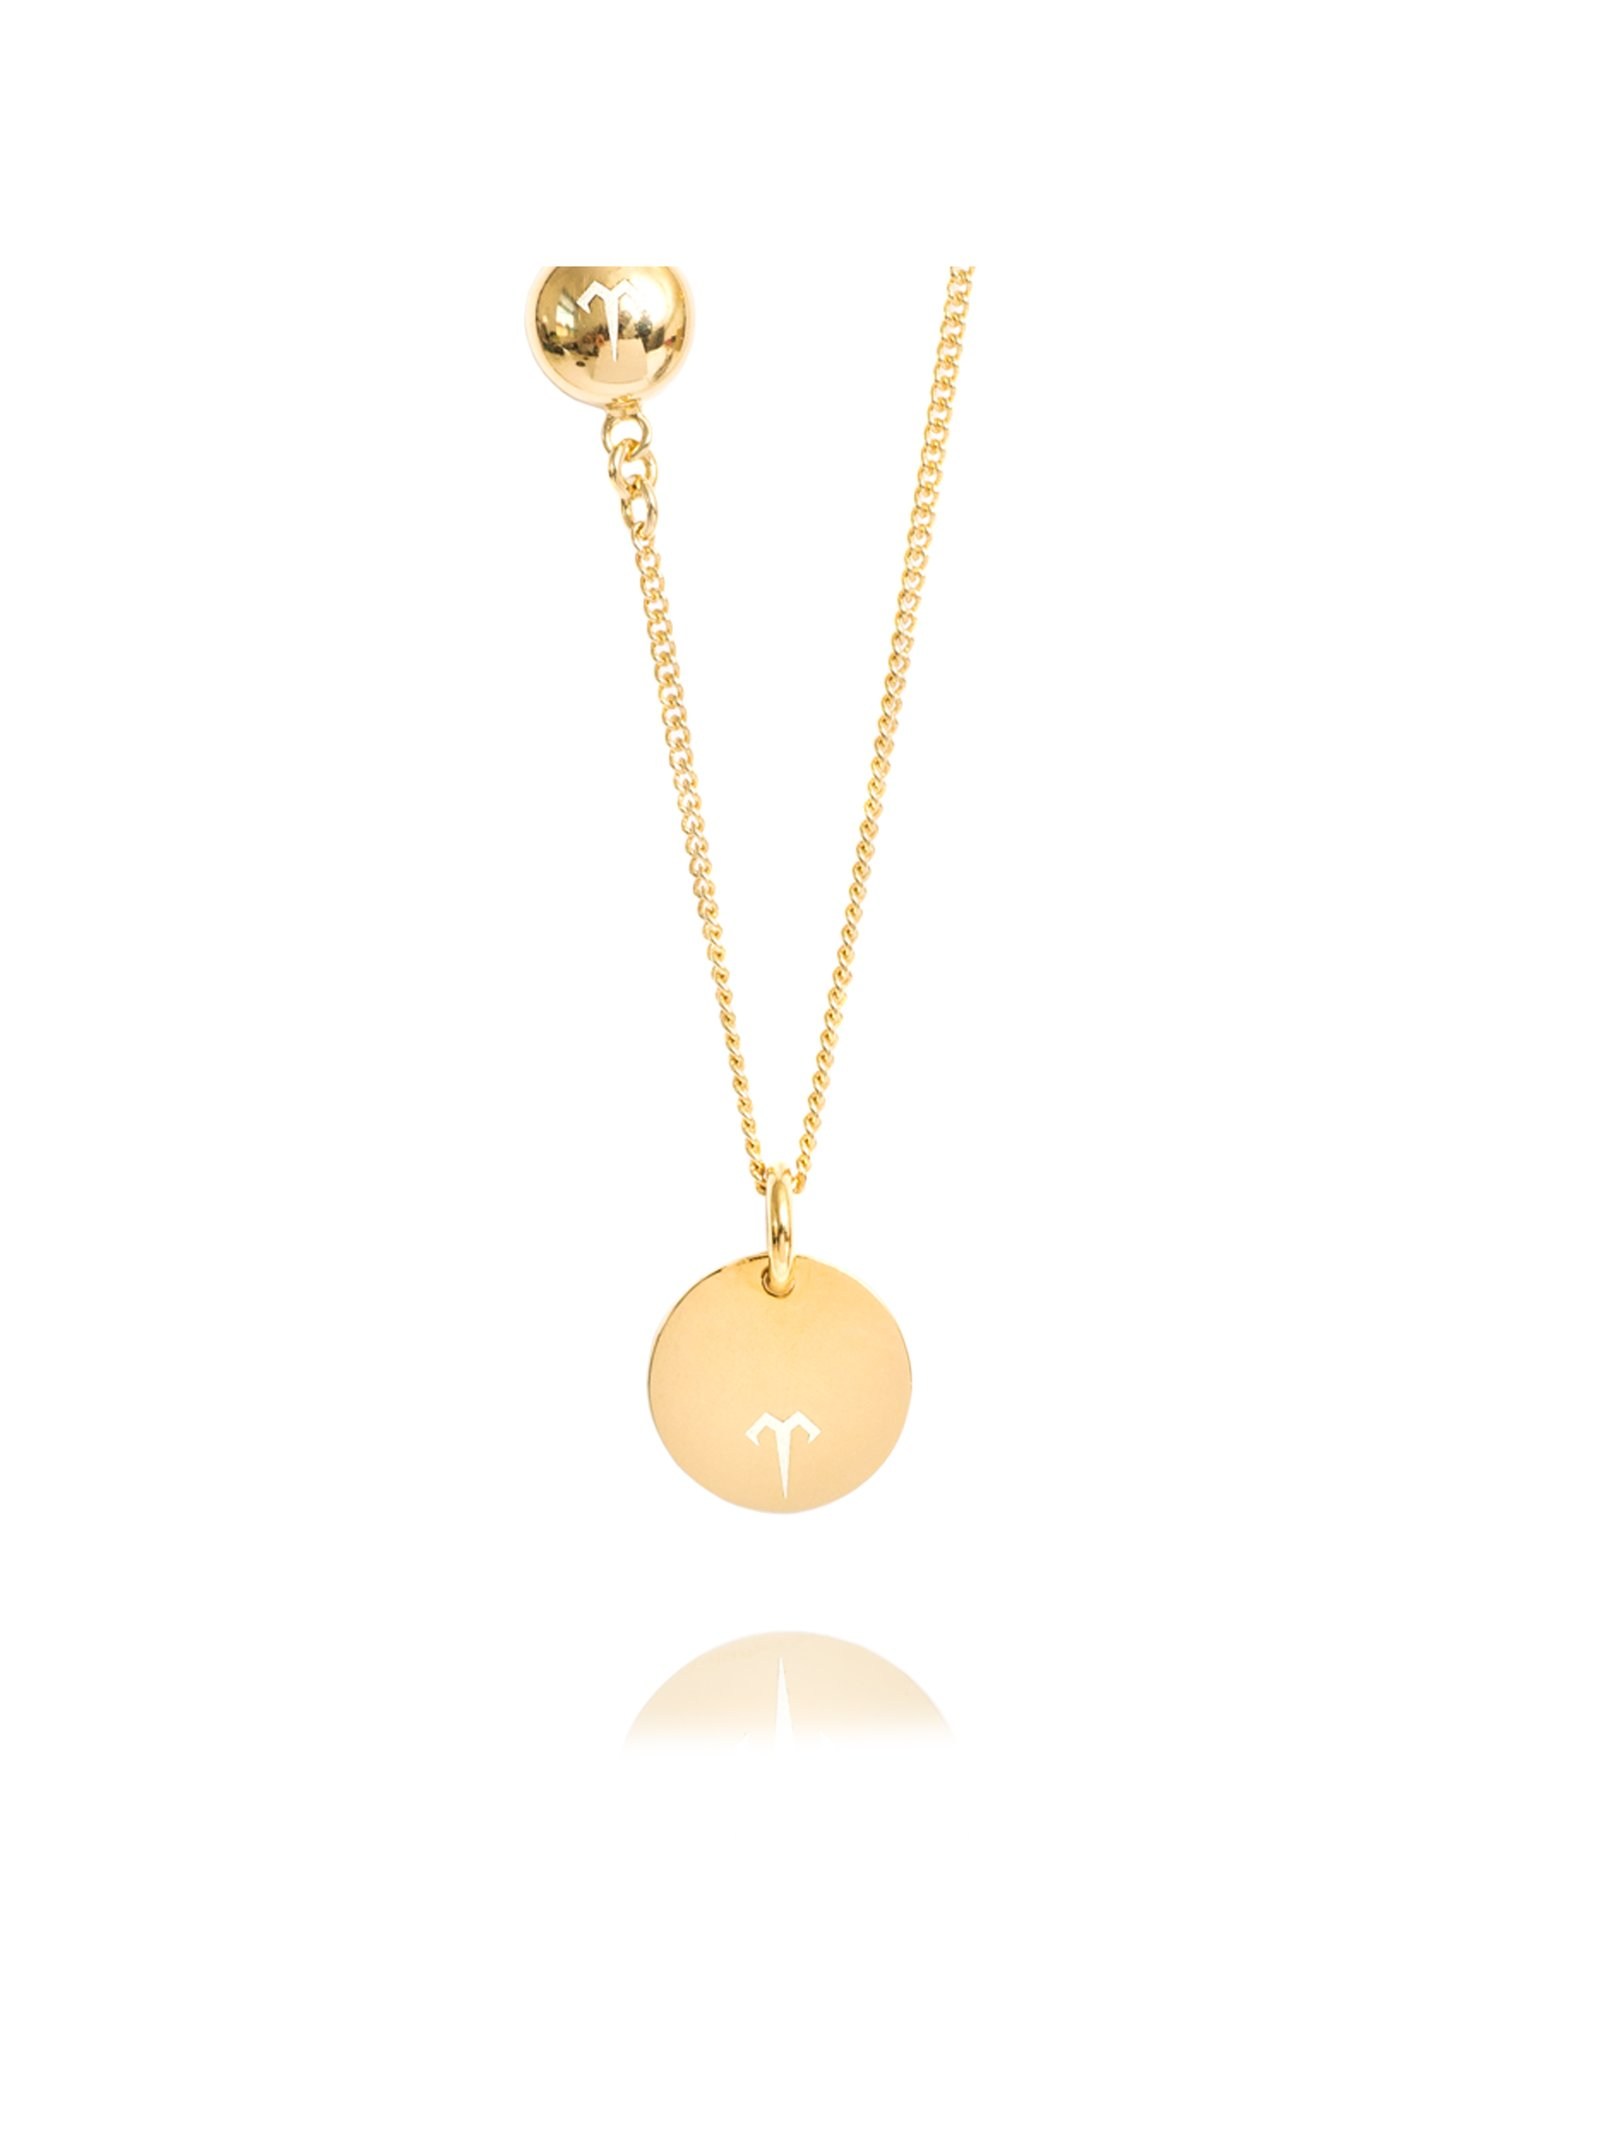 Ternary London SMALL COIN PENDANT LONG NECKLACE GOLD